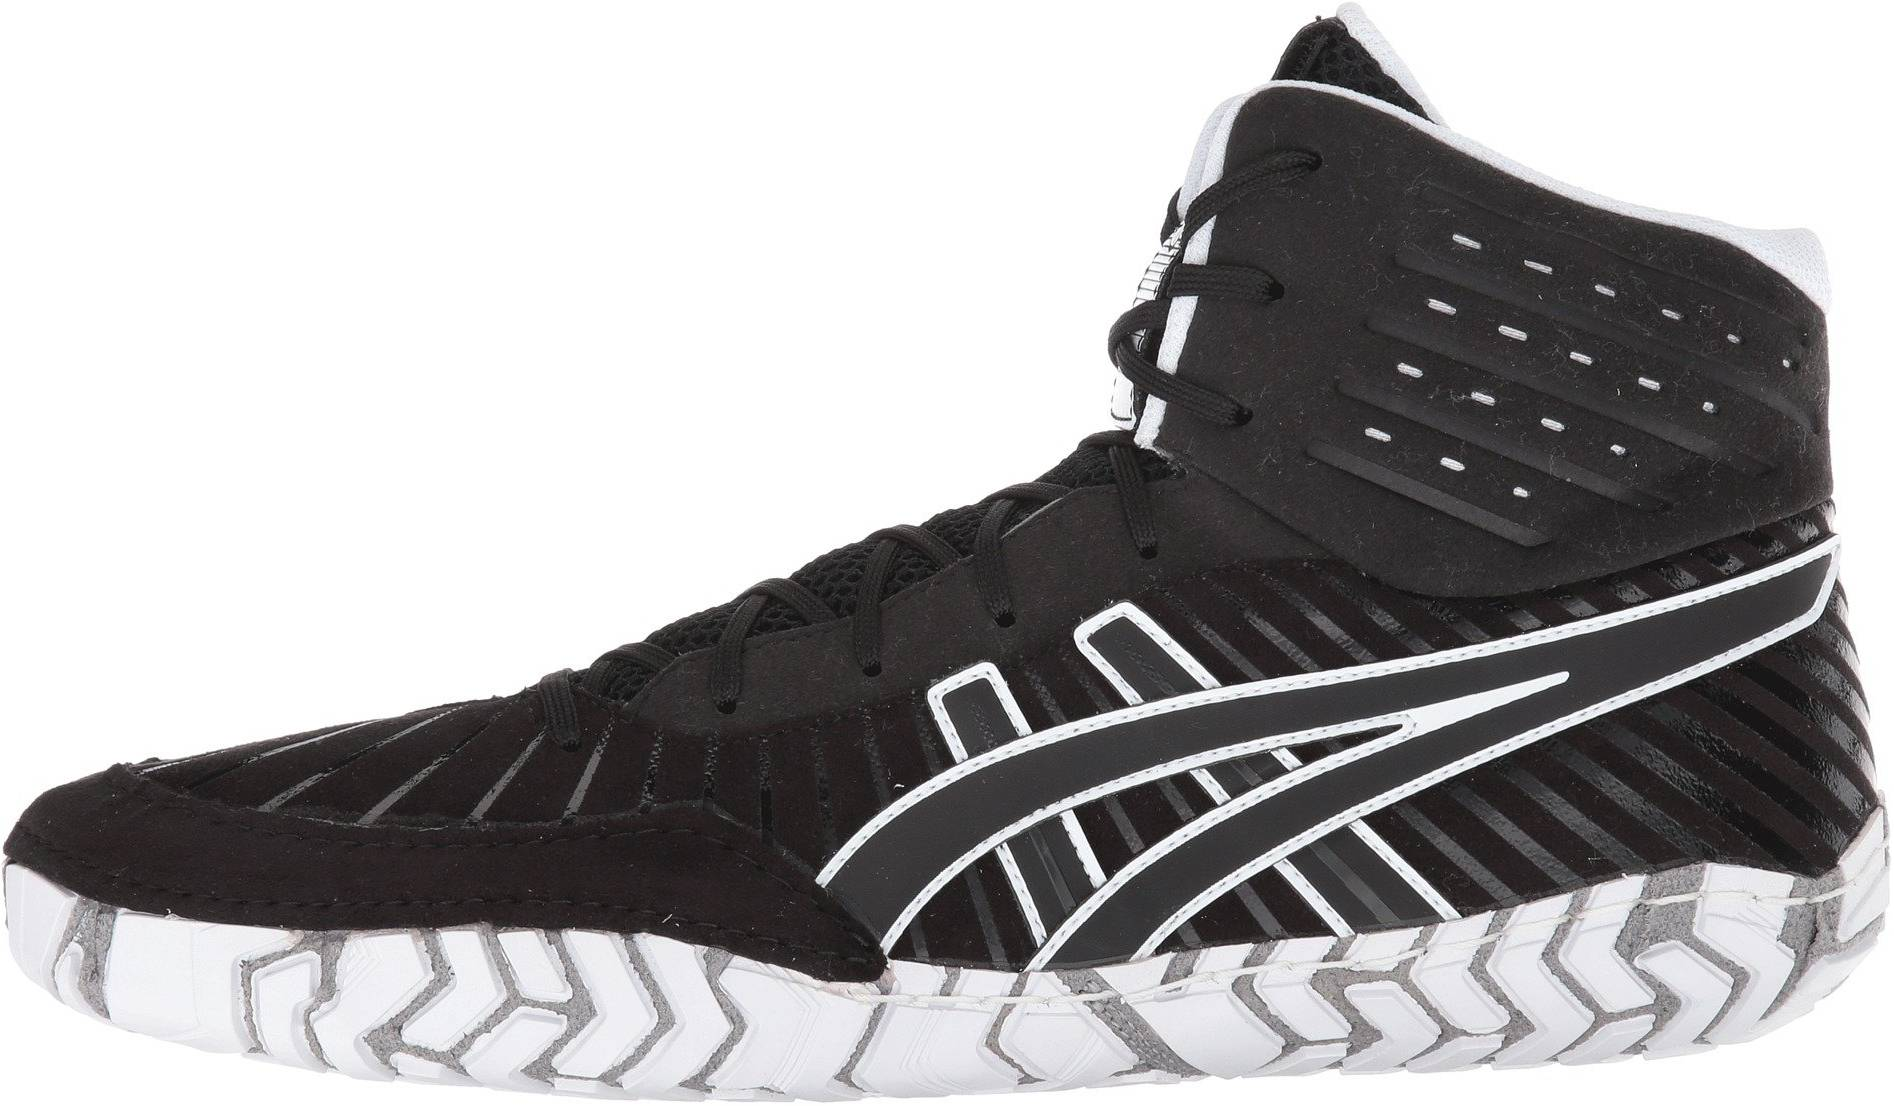 Only £113 + Review of Asics Aggressor 4